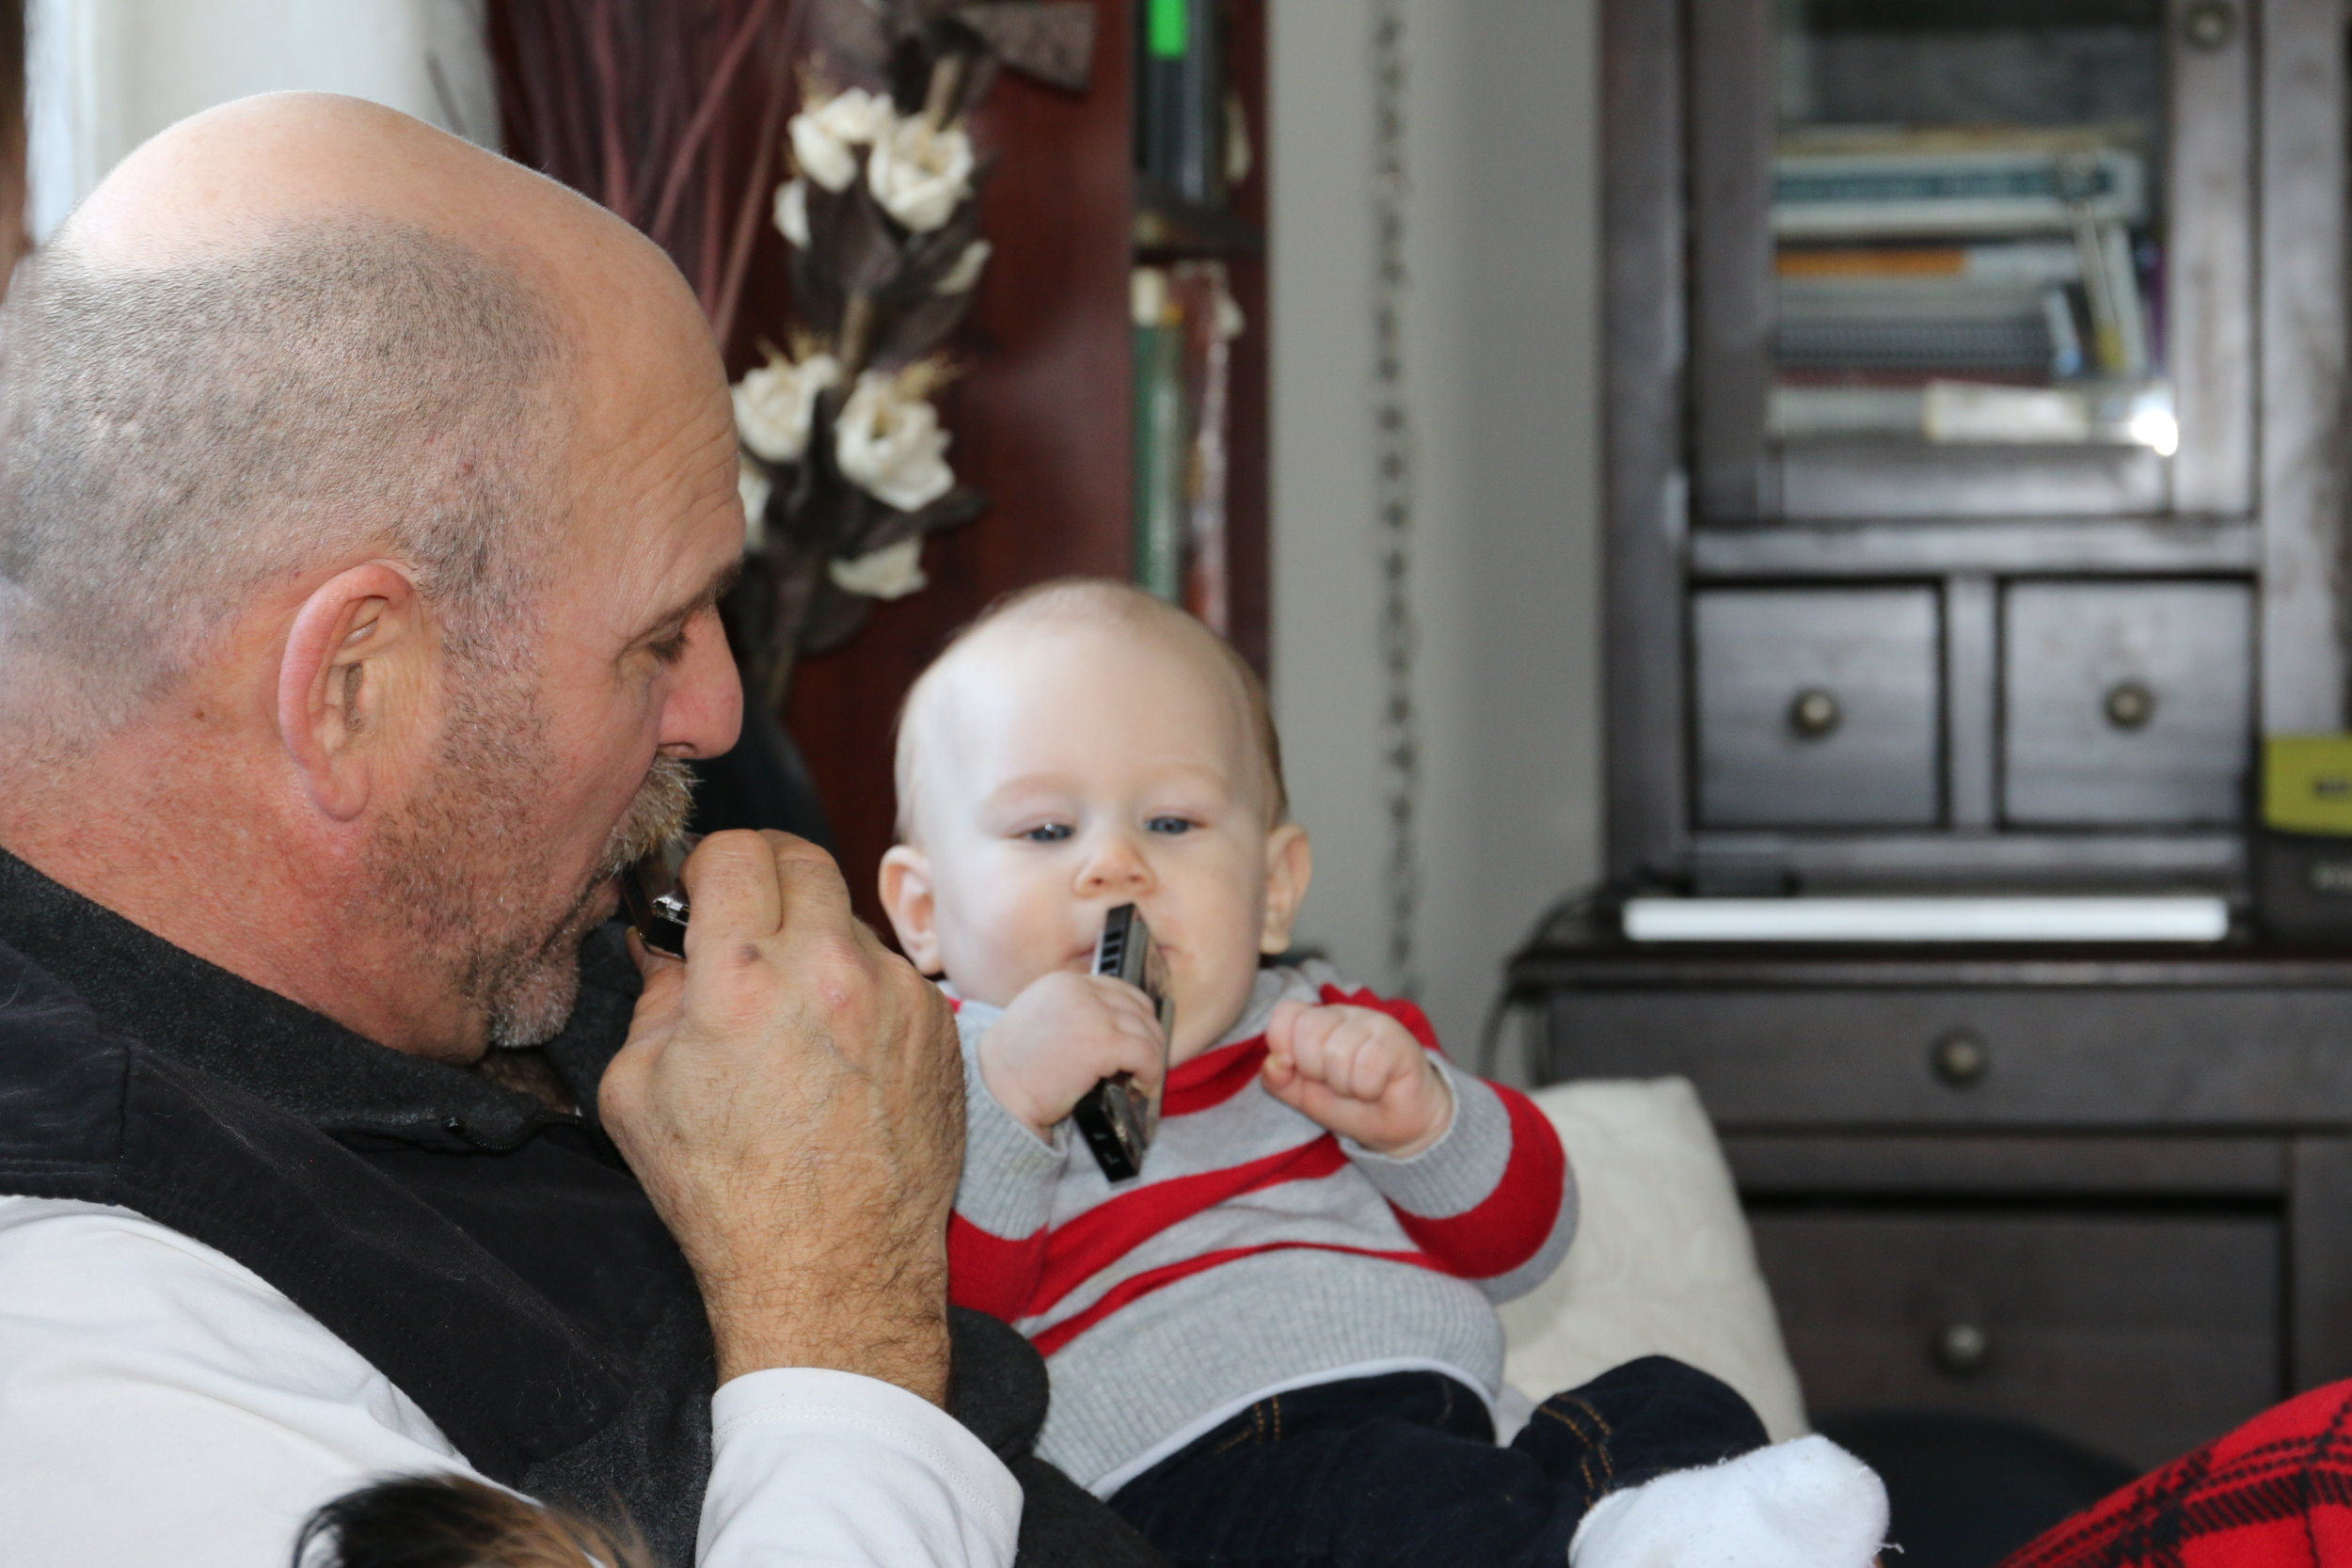 Playing the harmonica - Grandpa's little prodigy